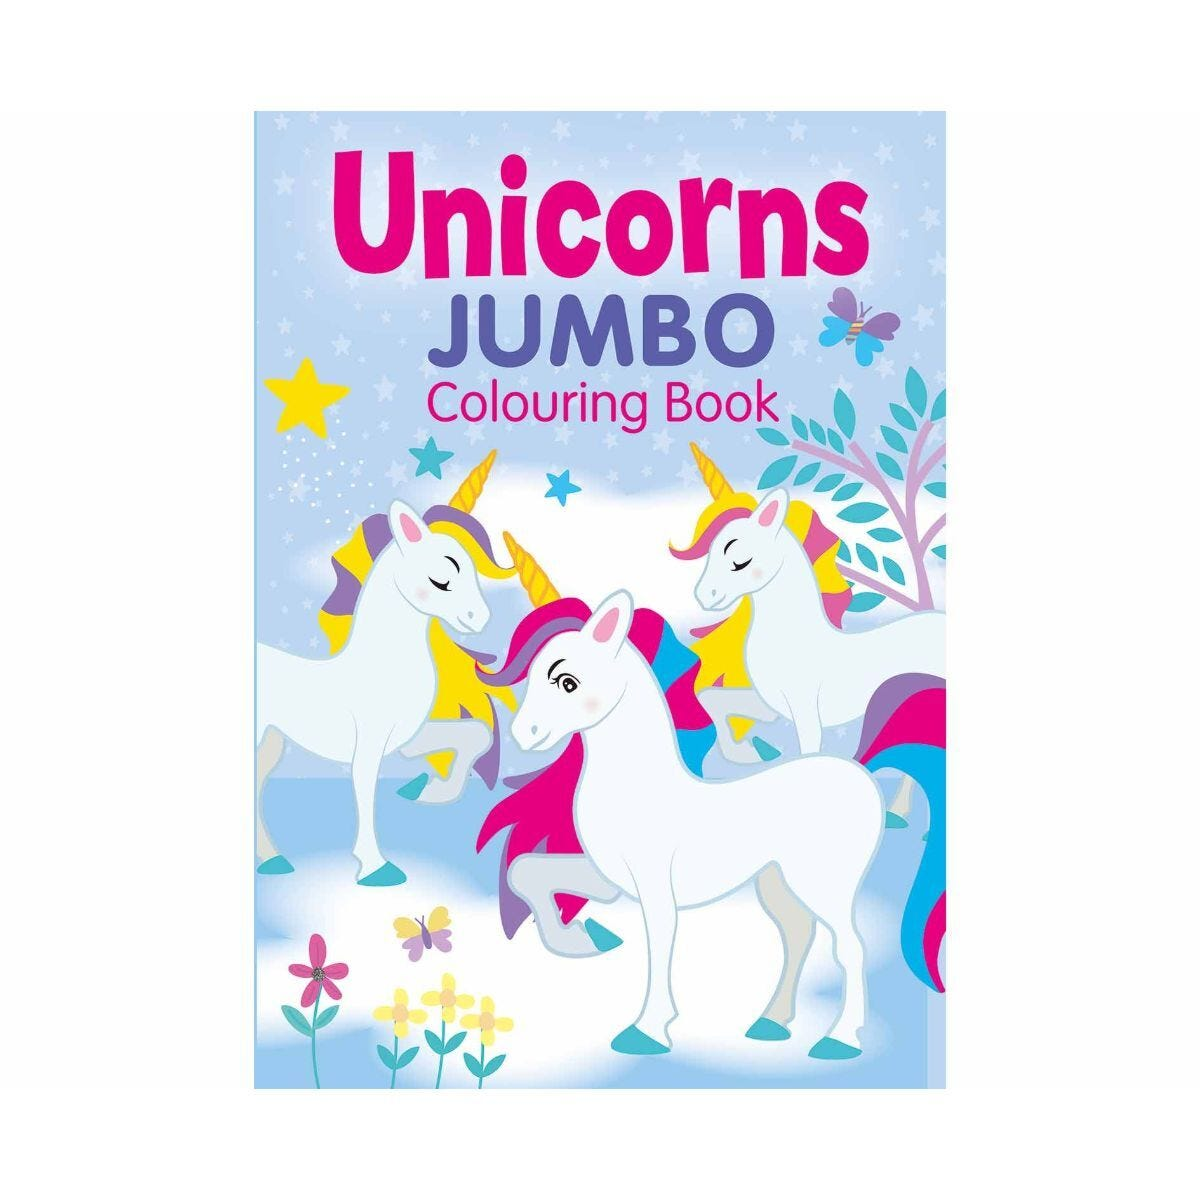 Unicorns Jumbo Colouring Book A4 160 Pages